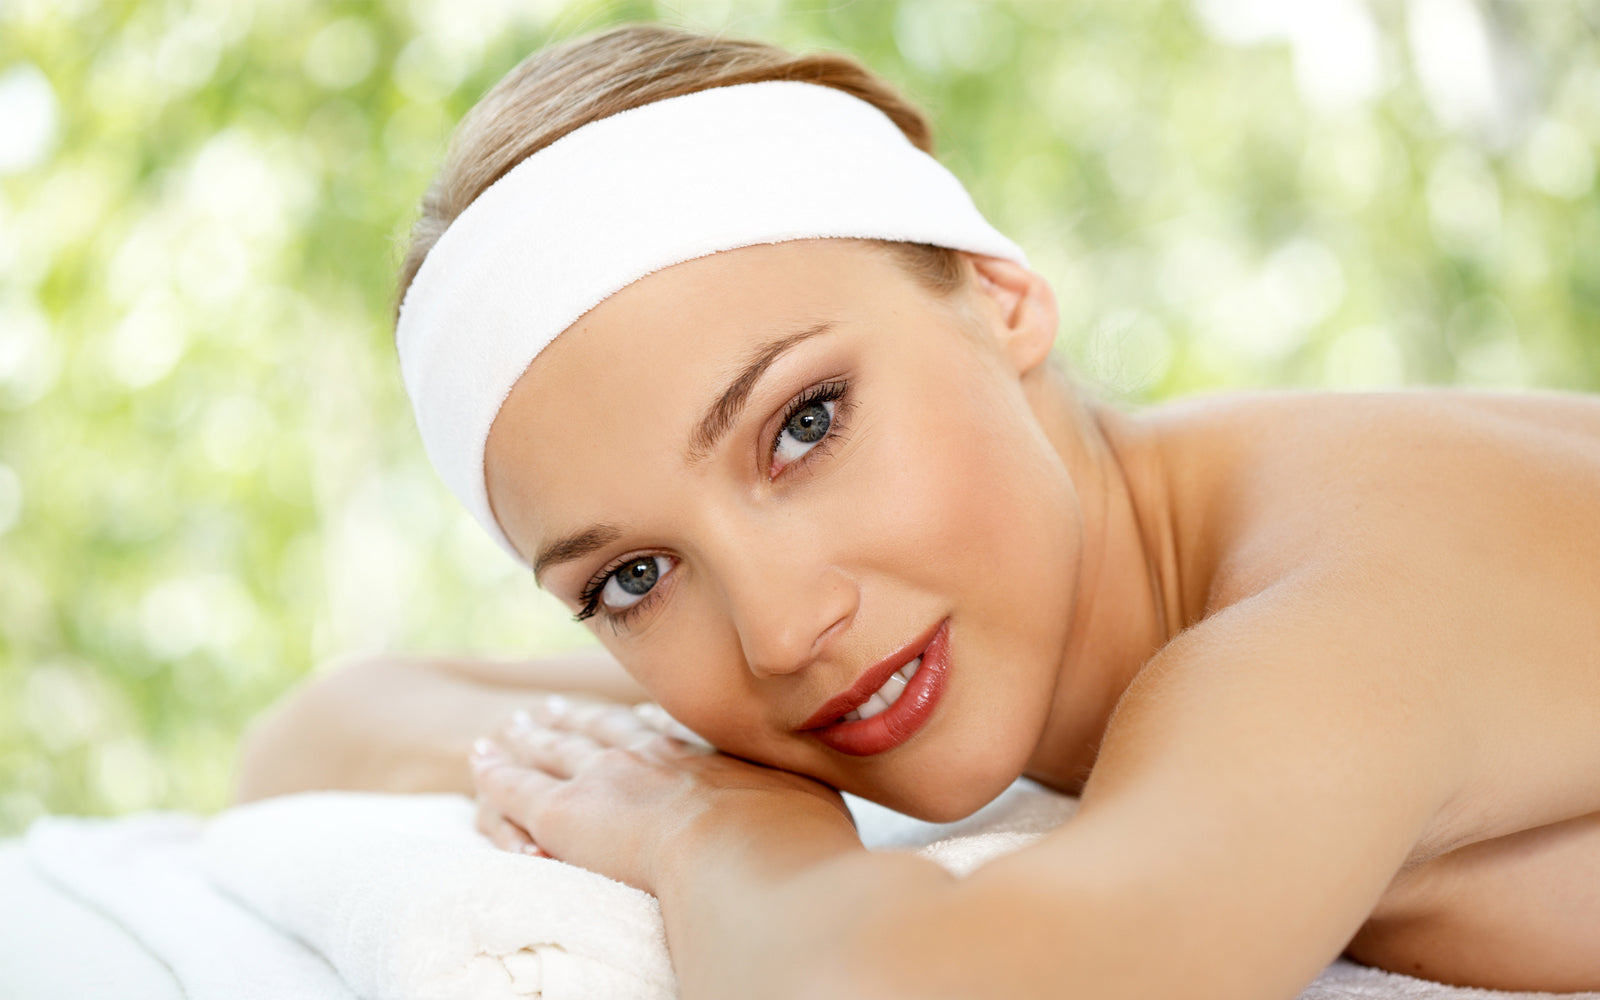 Book facial aesthetic treatment appointment link